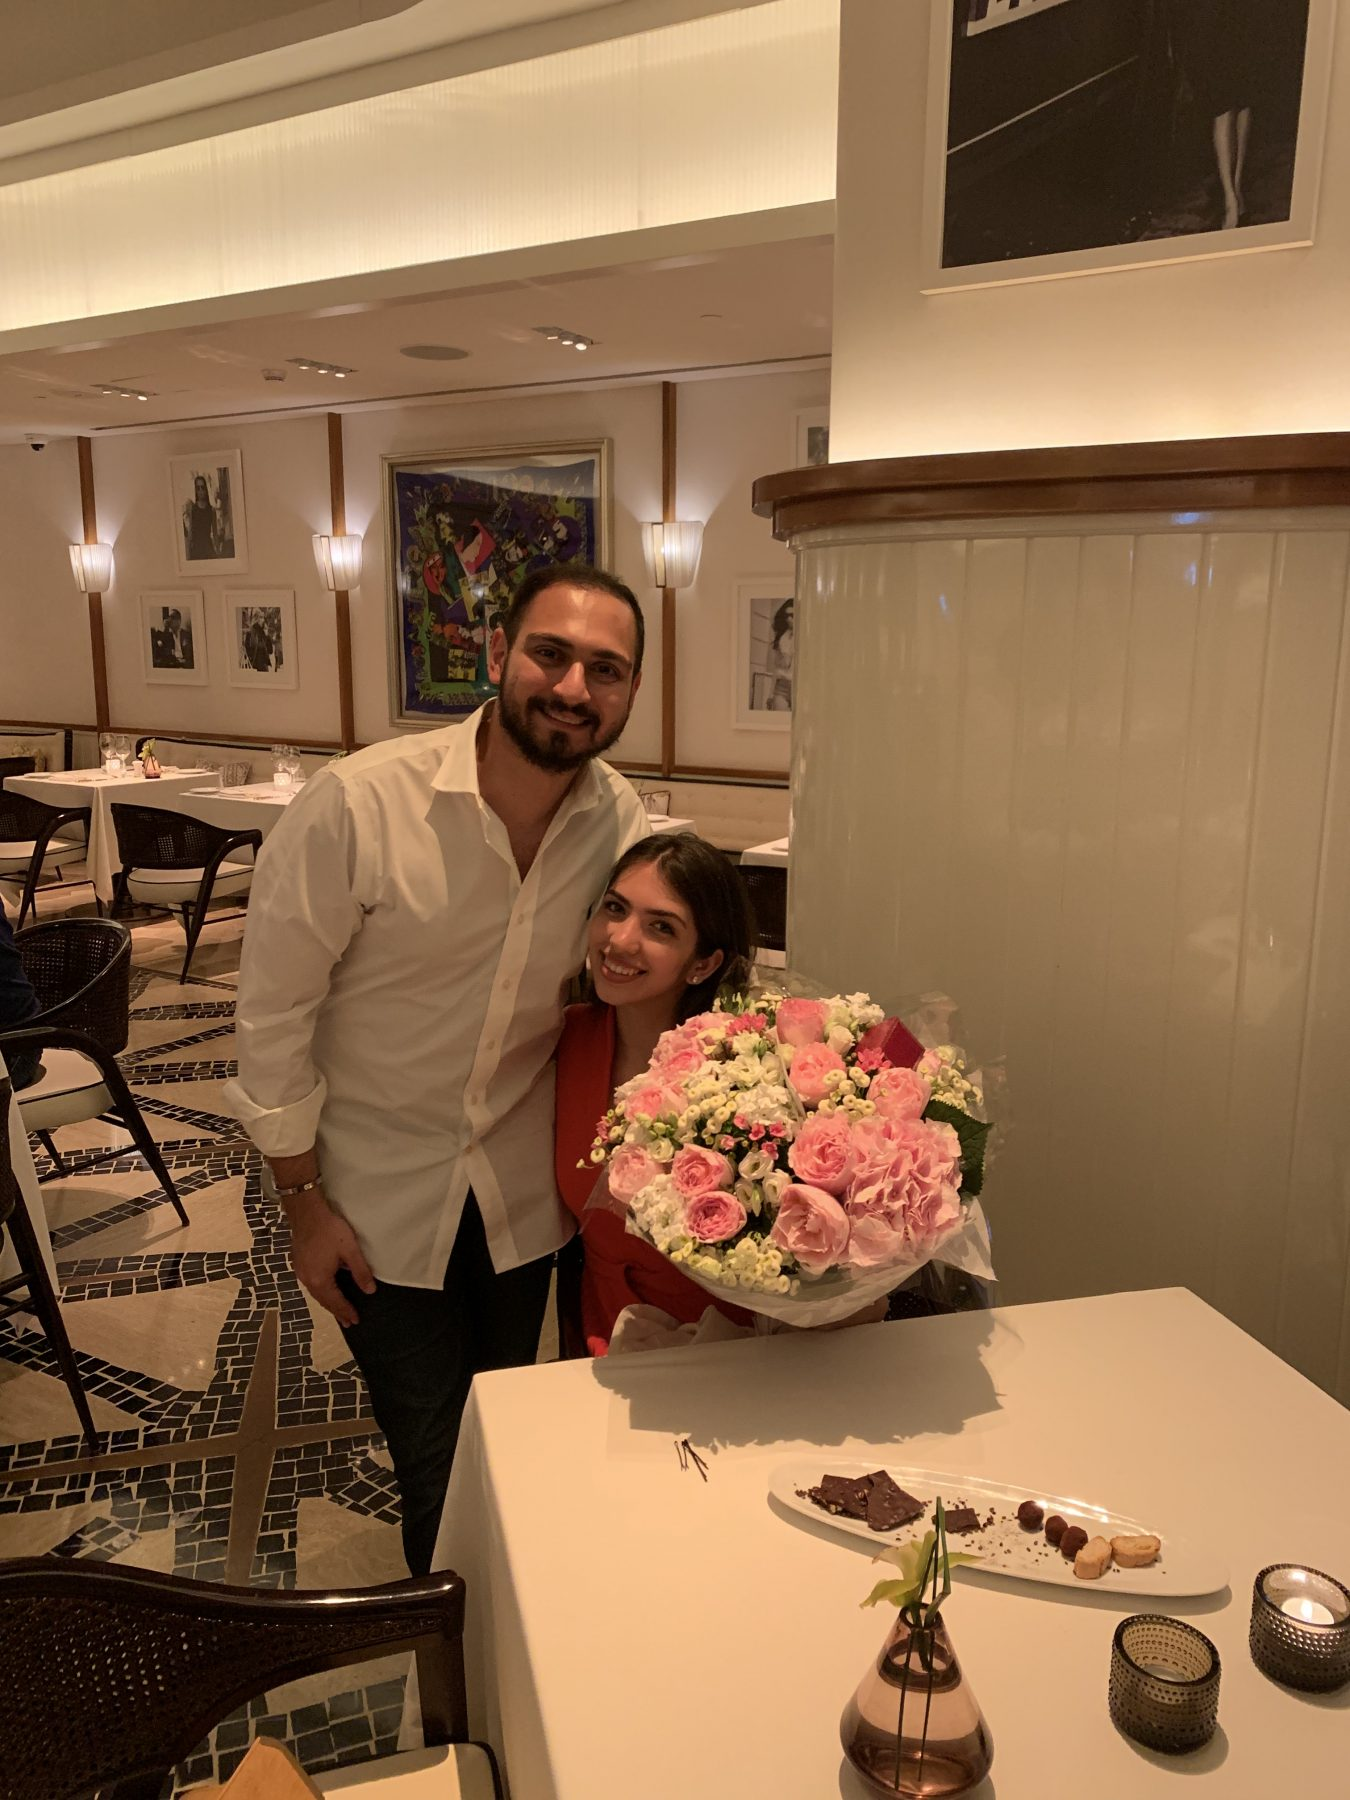 Dana and Hassan on the night of their engagement